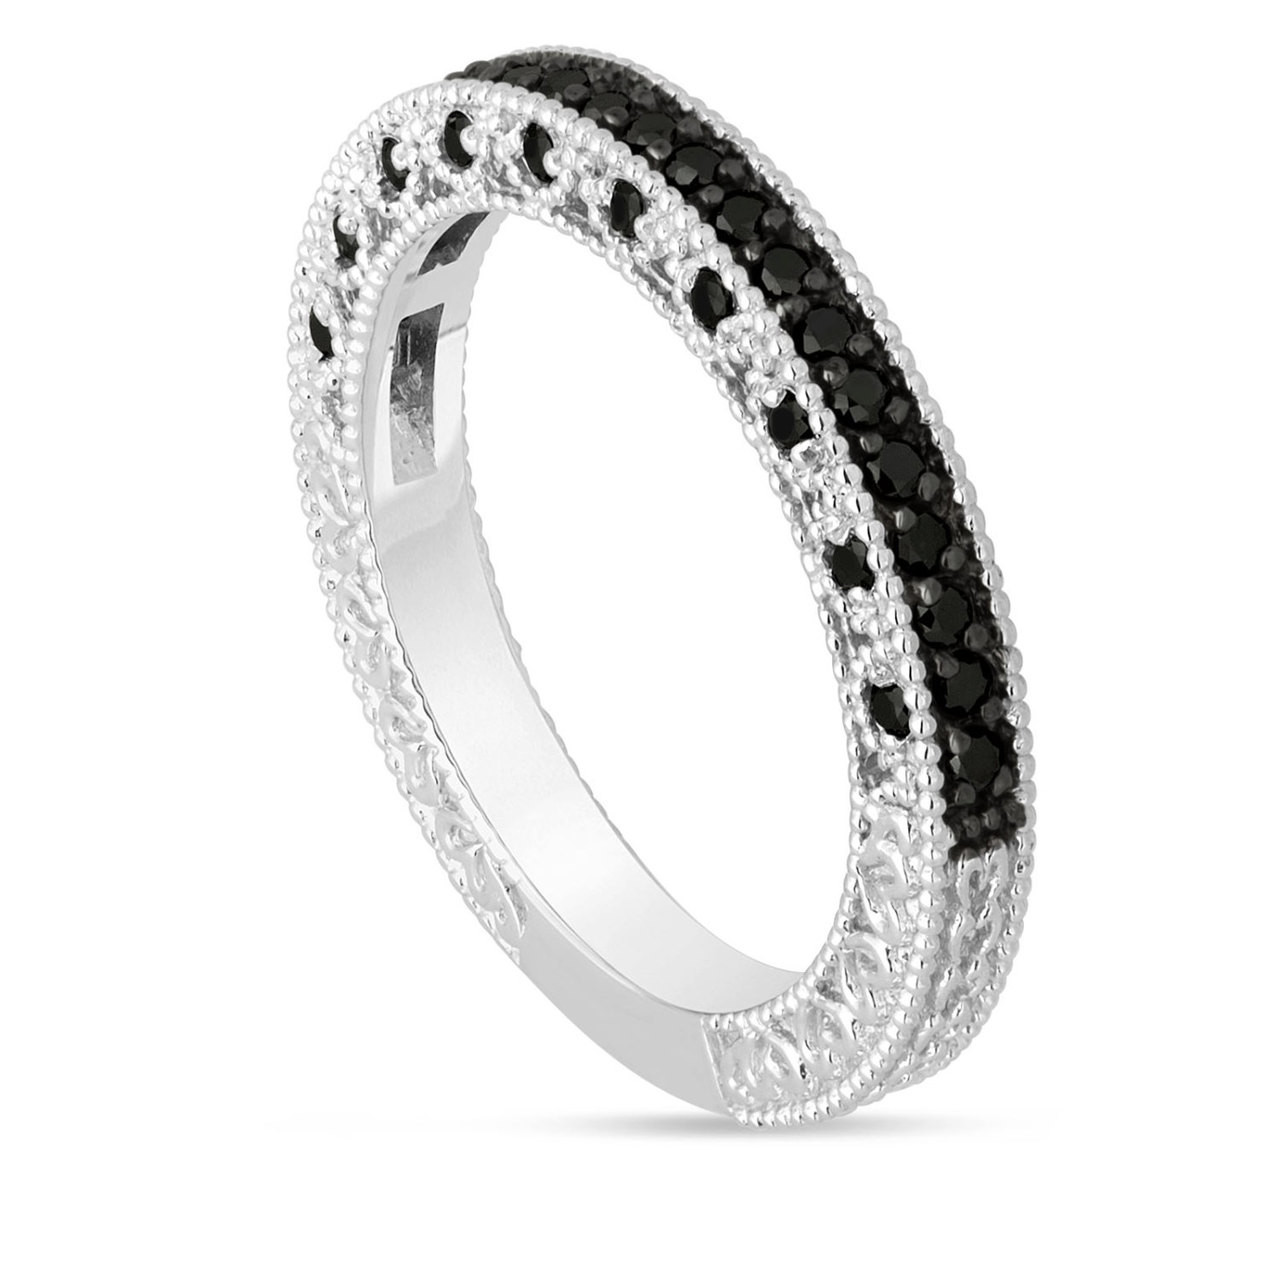 Vintage Engraved Diamond Wedding Band With Milgrain Detail: Platinum Black Diamonds Wedding Band Half Eternity Vintage